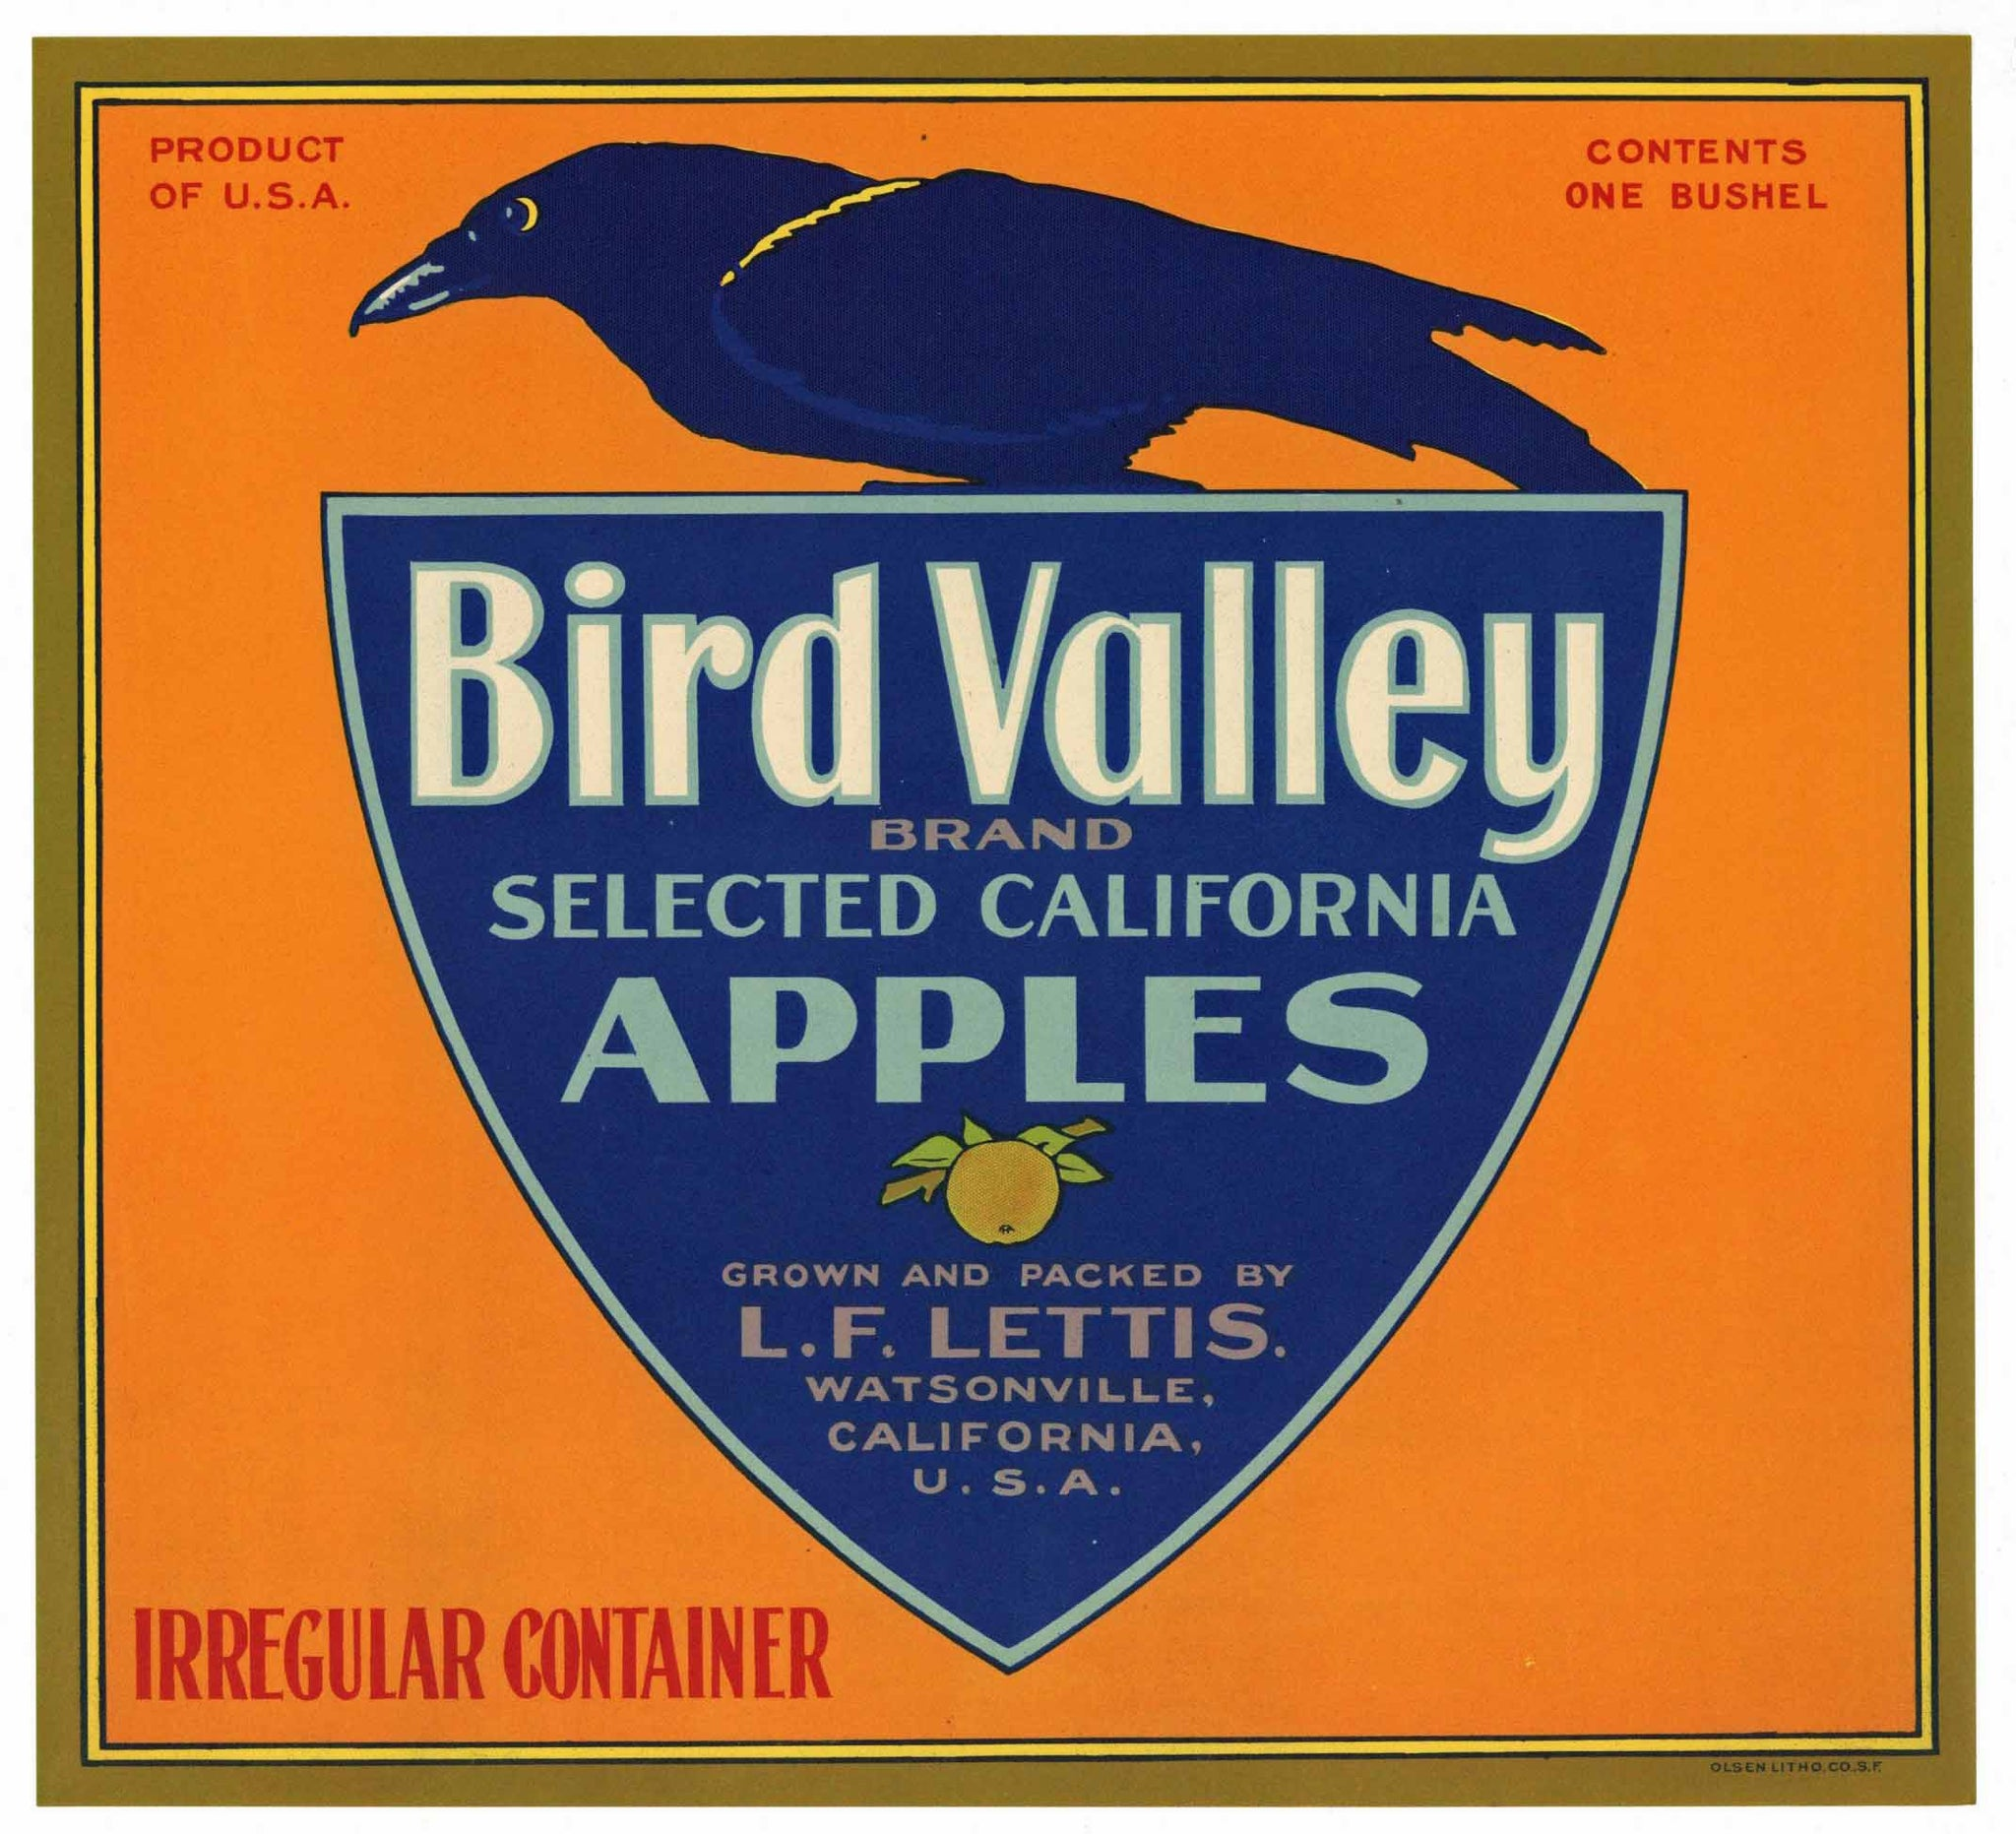 Bird Valley Brand Vintage Watsonville Apple Crate Label